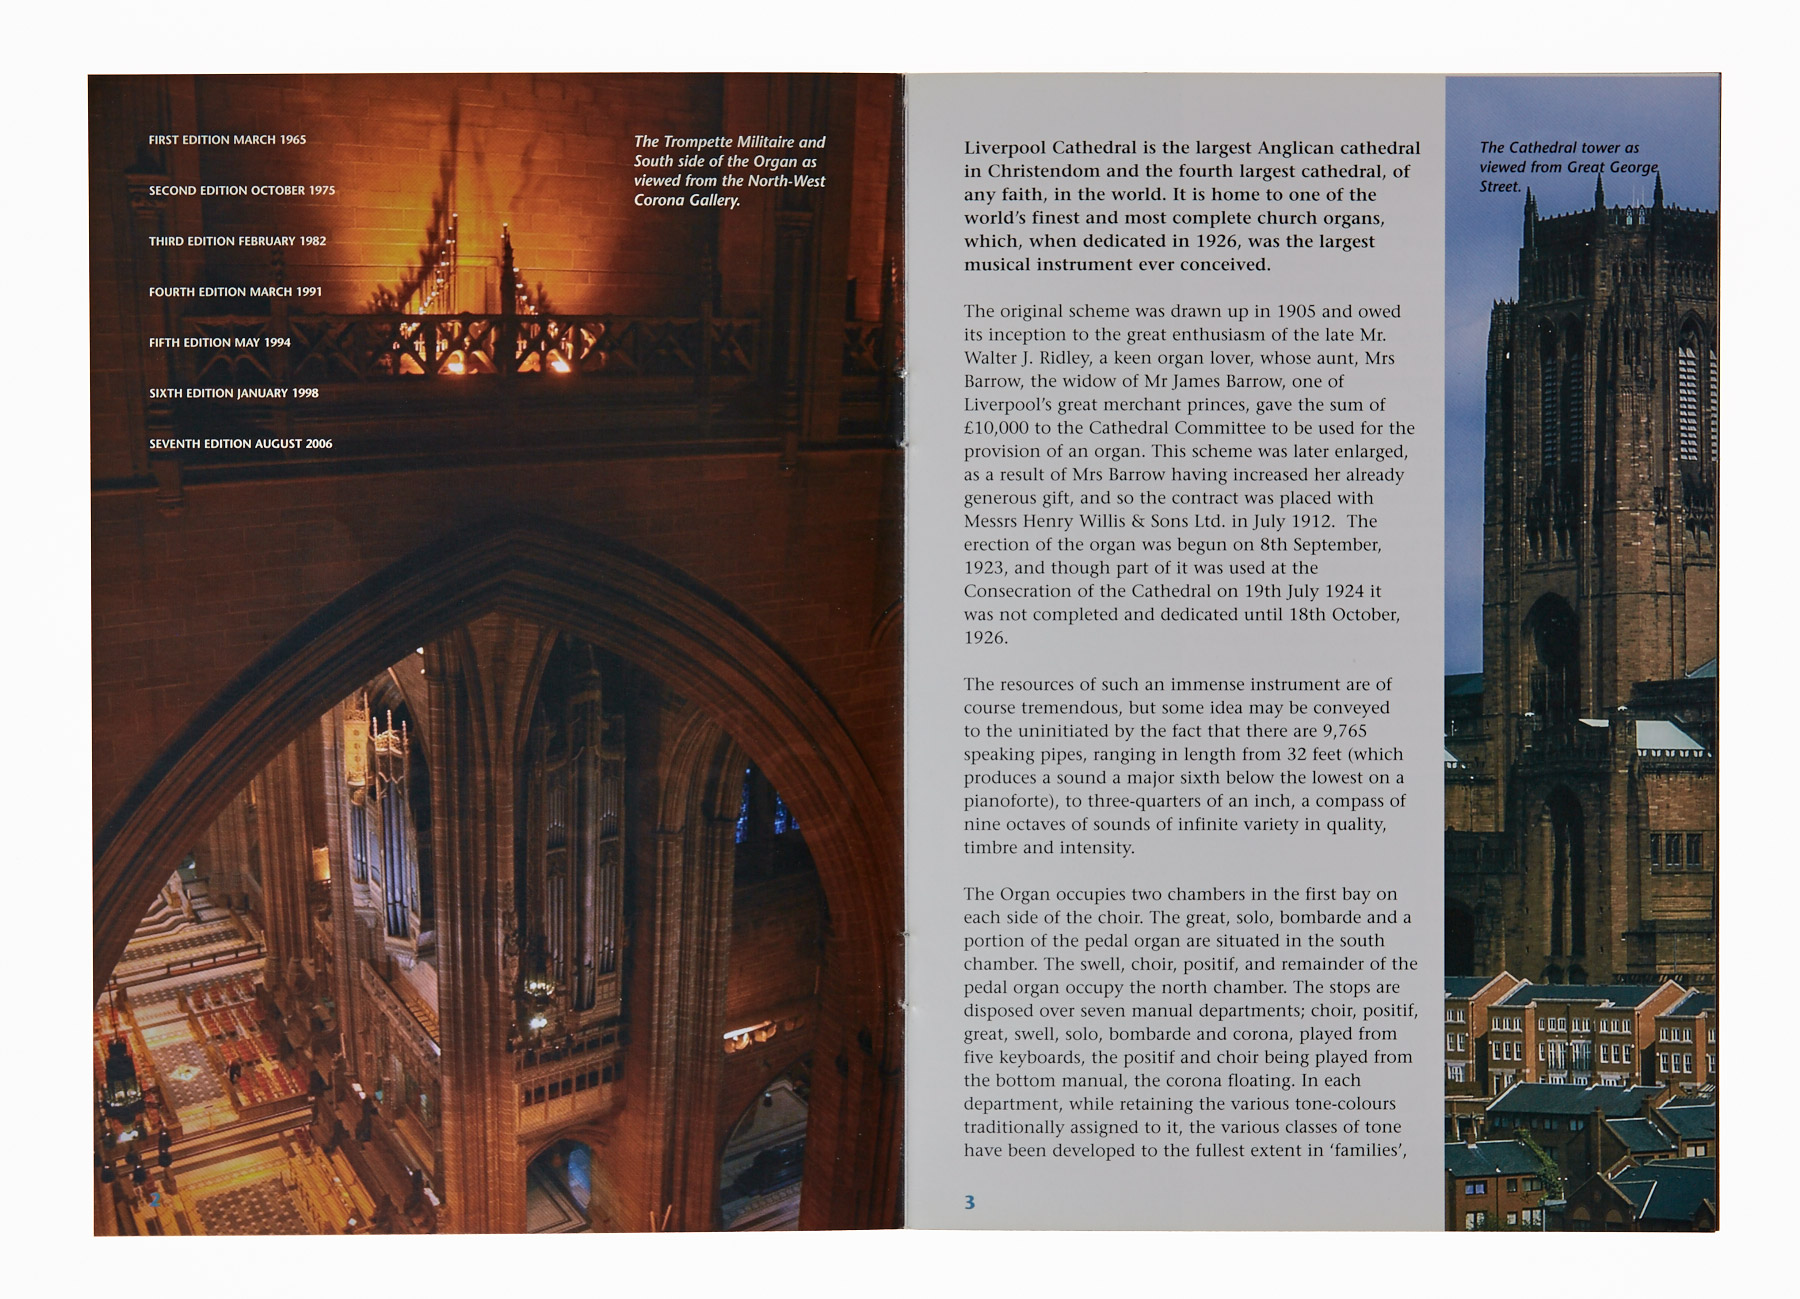 liverpool-cathedral-organ-02.jpg